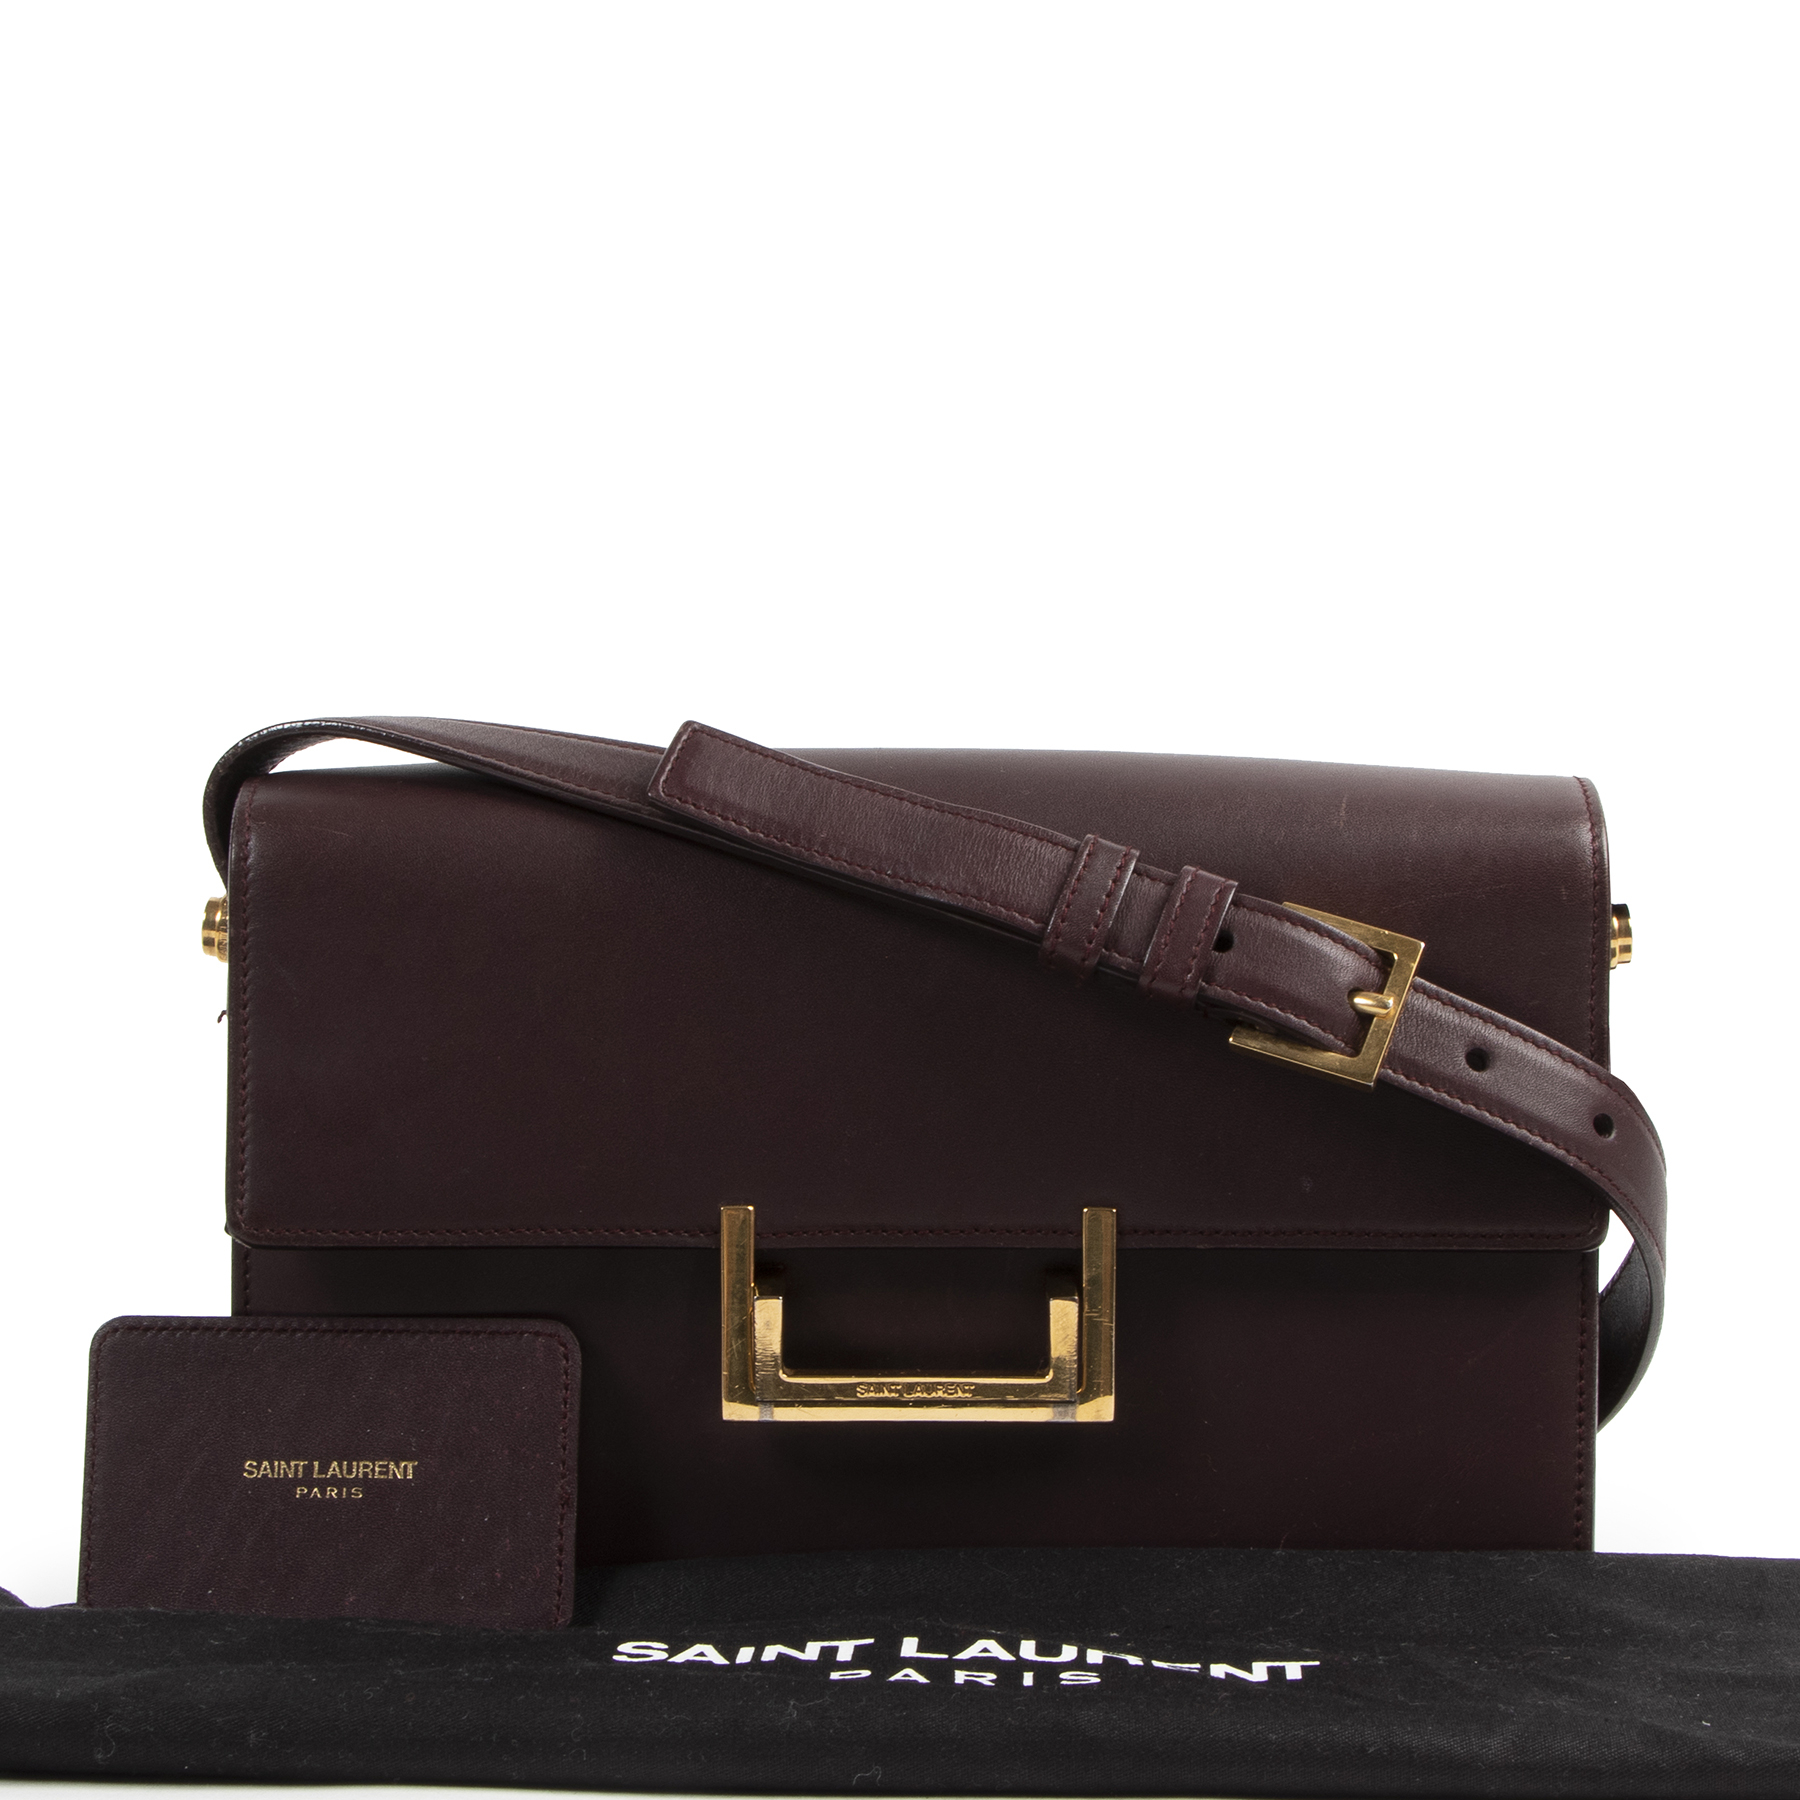 Saint Laurent Lulu Bag for the best price at Labellov